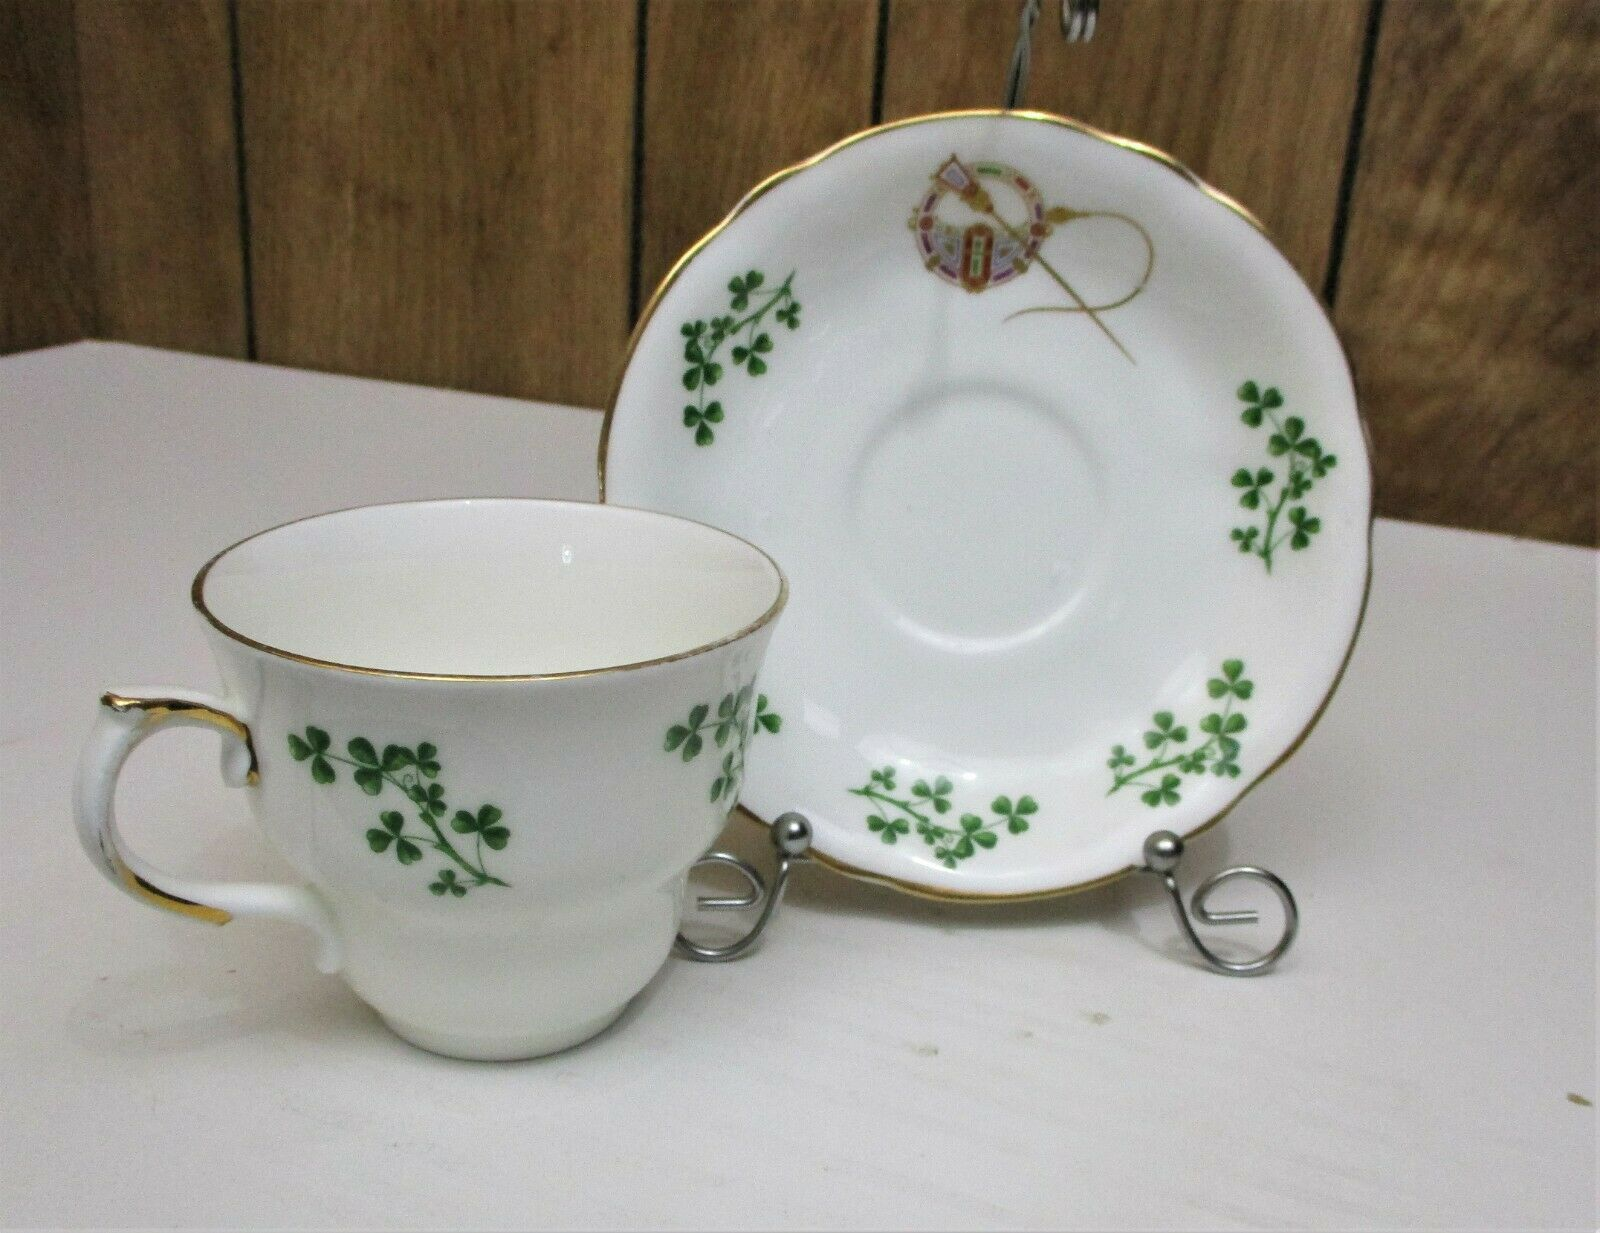 Primary image for Arklaw Shamrock/Tara Brooch Tea Cups and Saucers set of Four